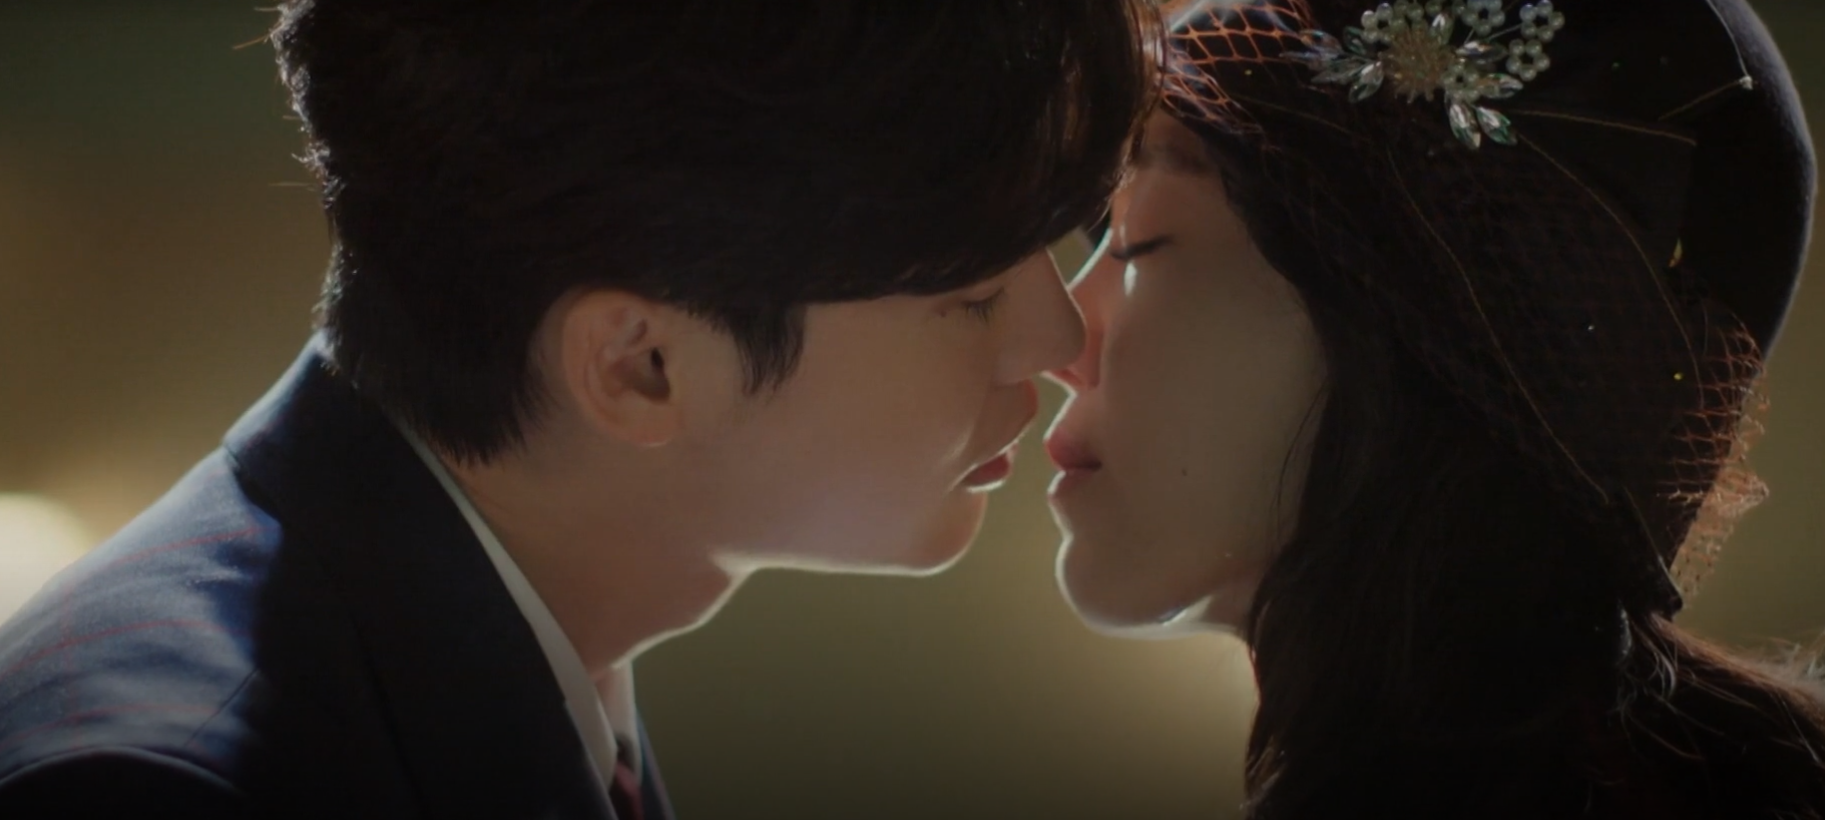 praise of death, hymn of death, lee jongsuk drama, lee jongsuk 2018, shin hyesun lee jongsuk, hymn of death drama, hymn of death 2018, hymn of death suicide, hymn of death episode 2, hymn of death sad, lee jongsuk kiss, shin hyesun lee jongsuk kiss, hymn of death suicide, hymn of death end